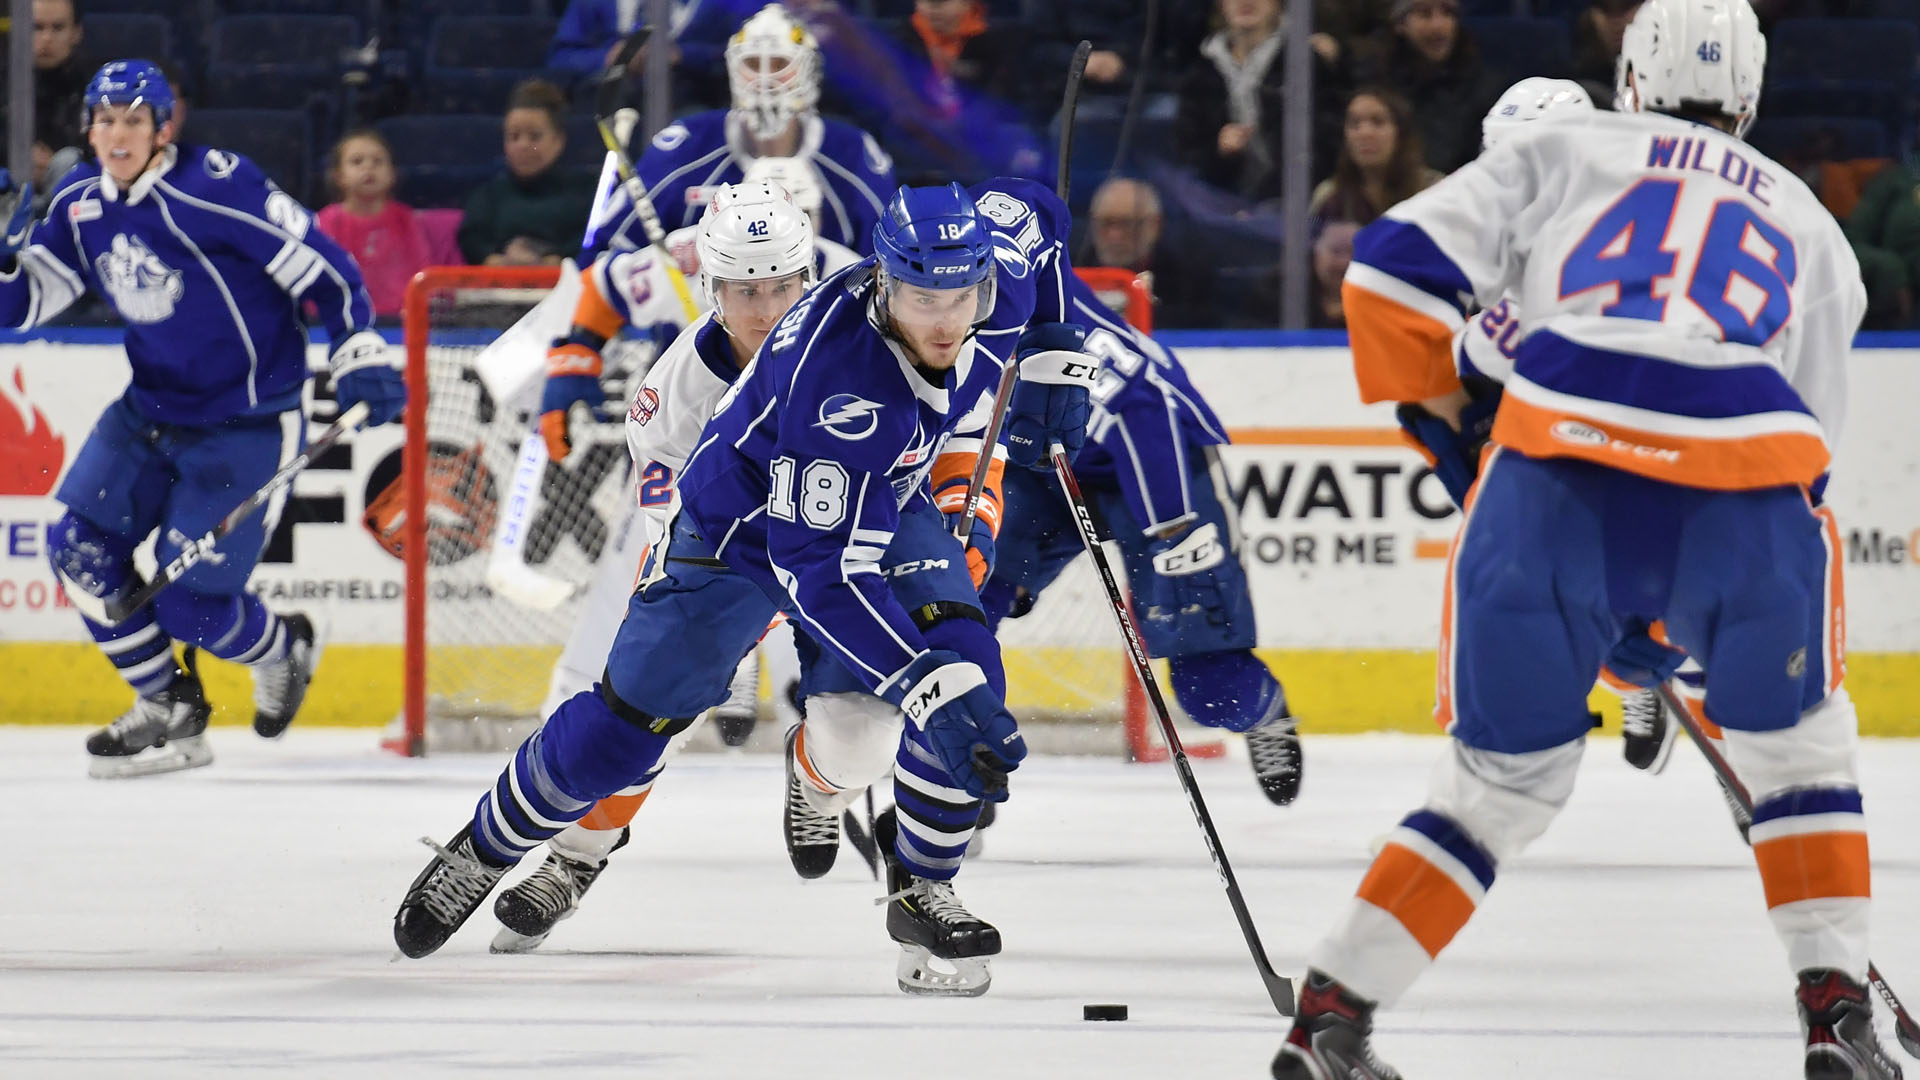 Sound Tigers steal 3-2 win over Crunch